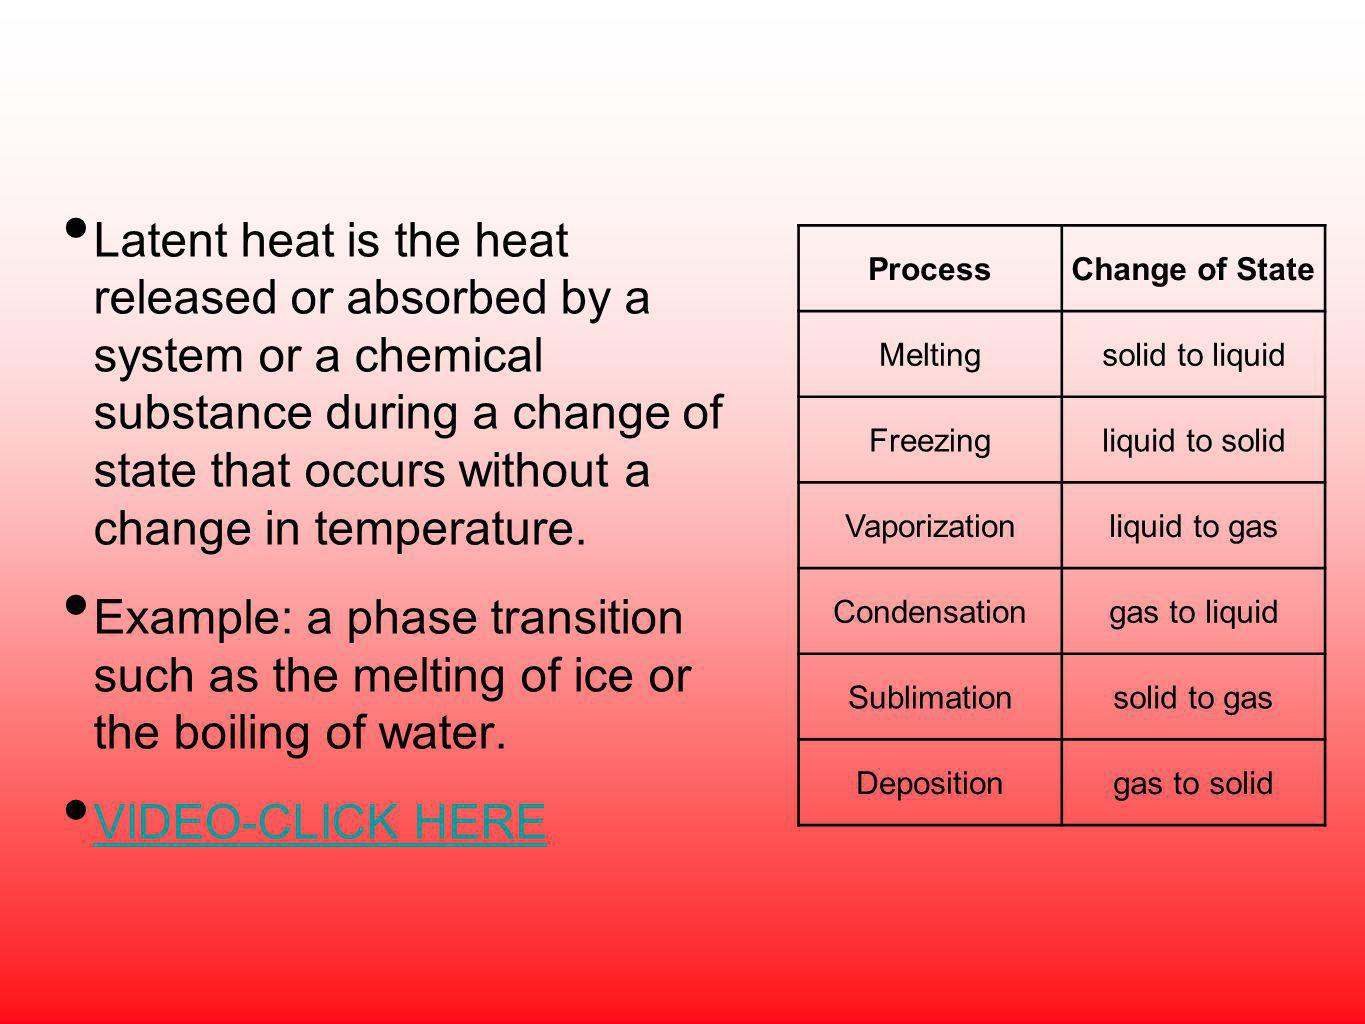 Latent heat is the heat released or absorbed by a system or a chemical substance during a change of state that occurs without a change in temperature.